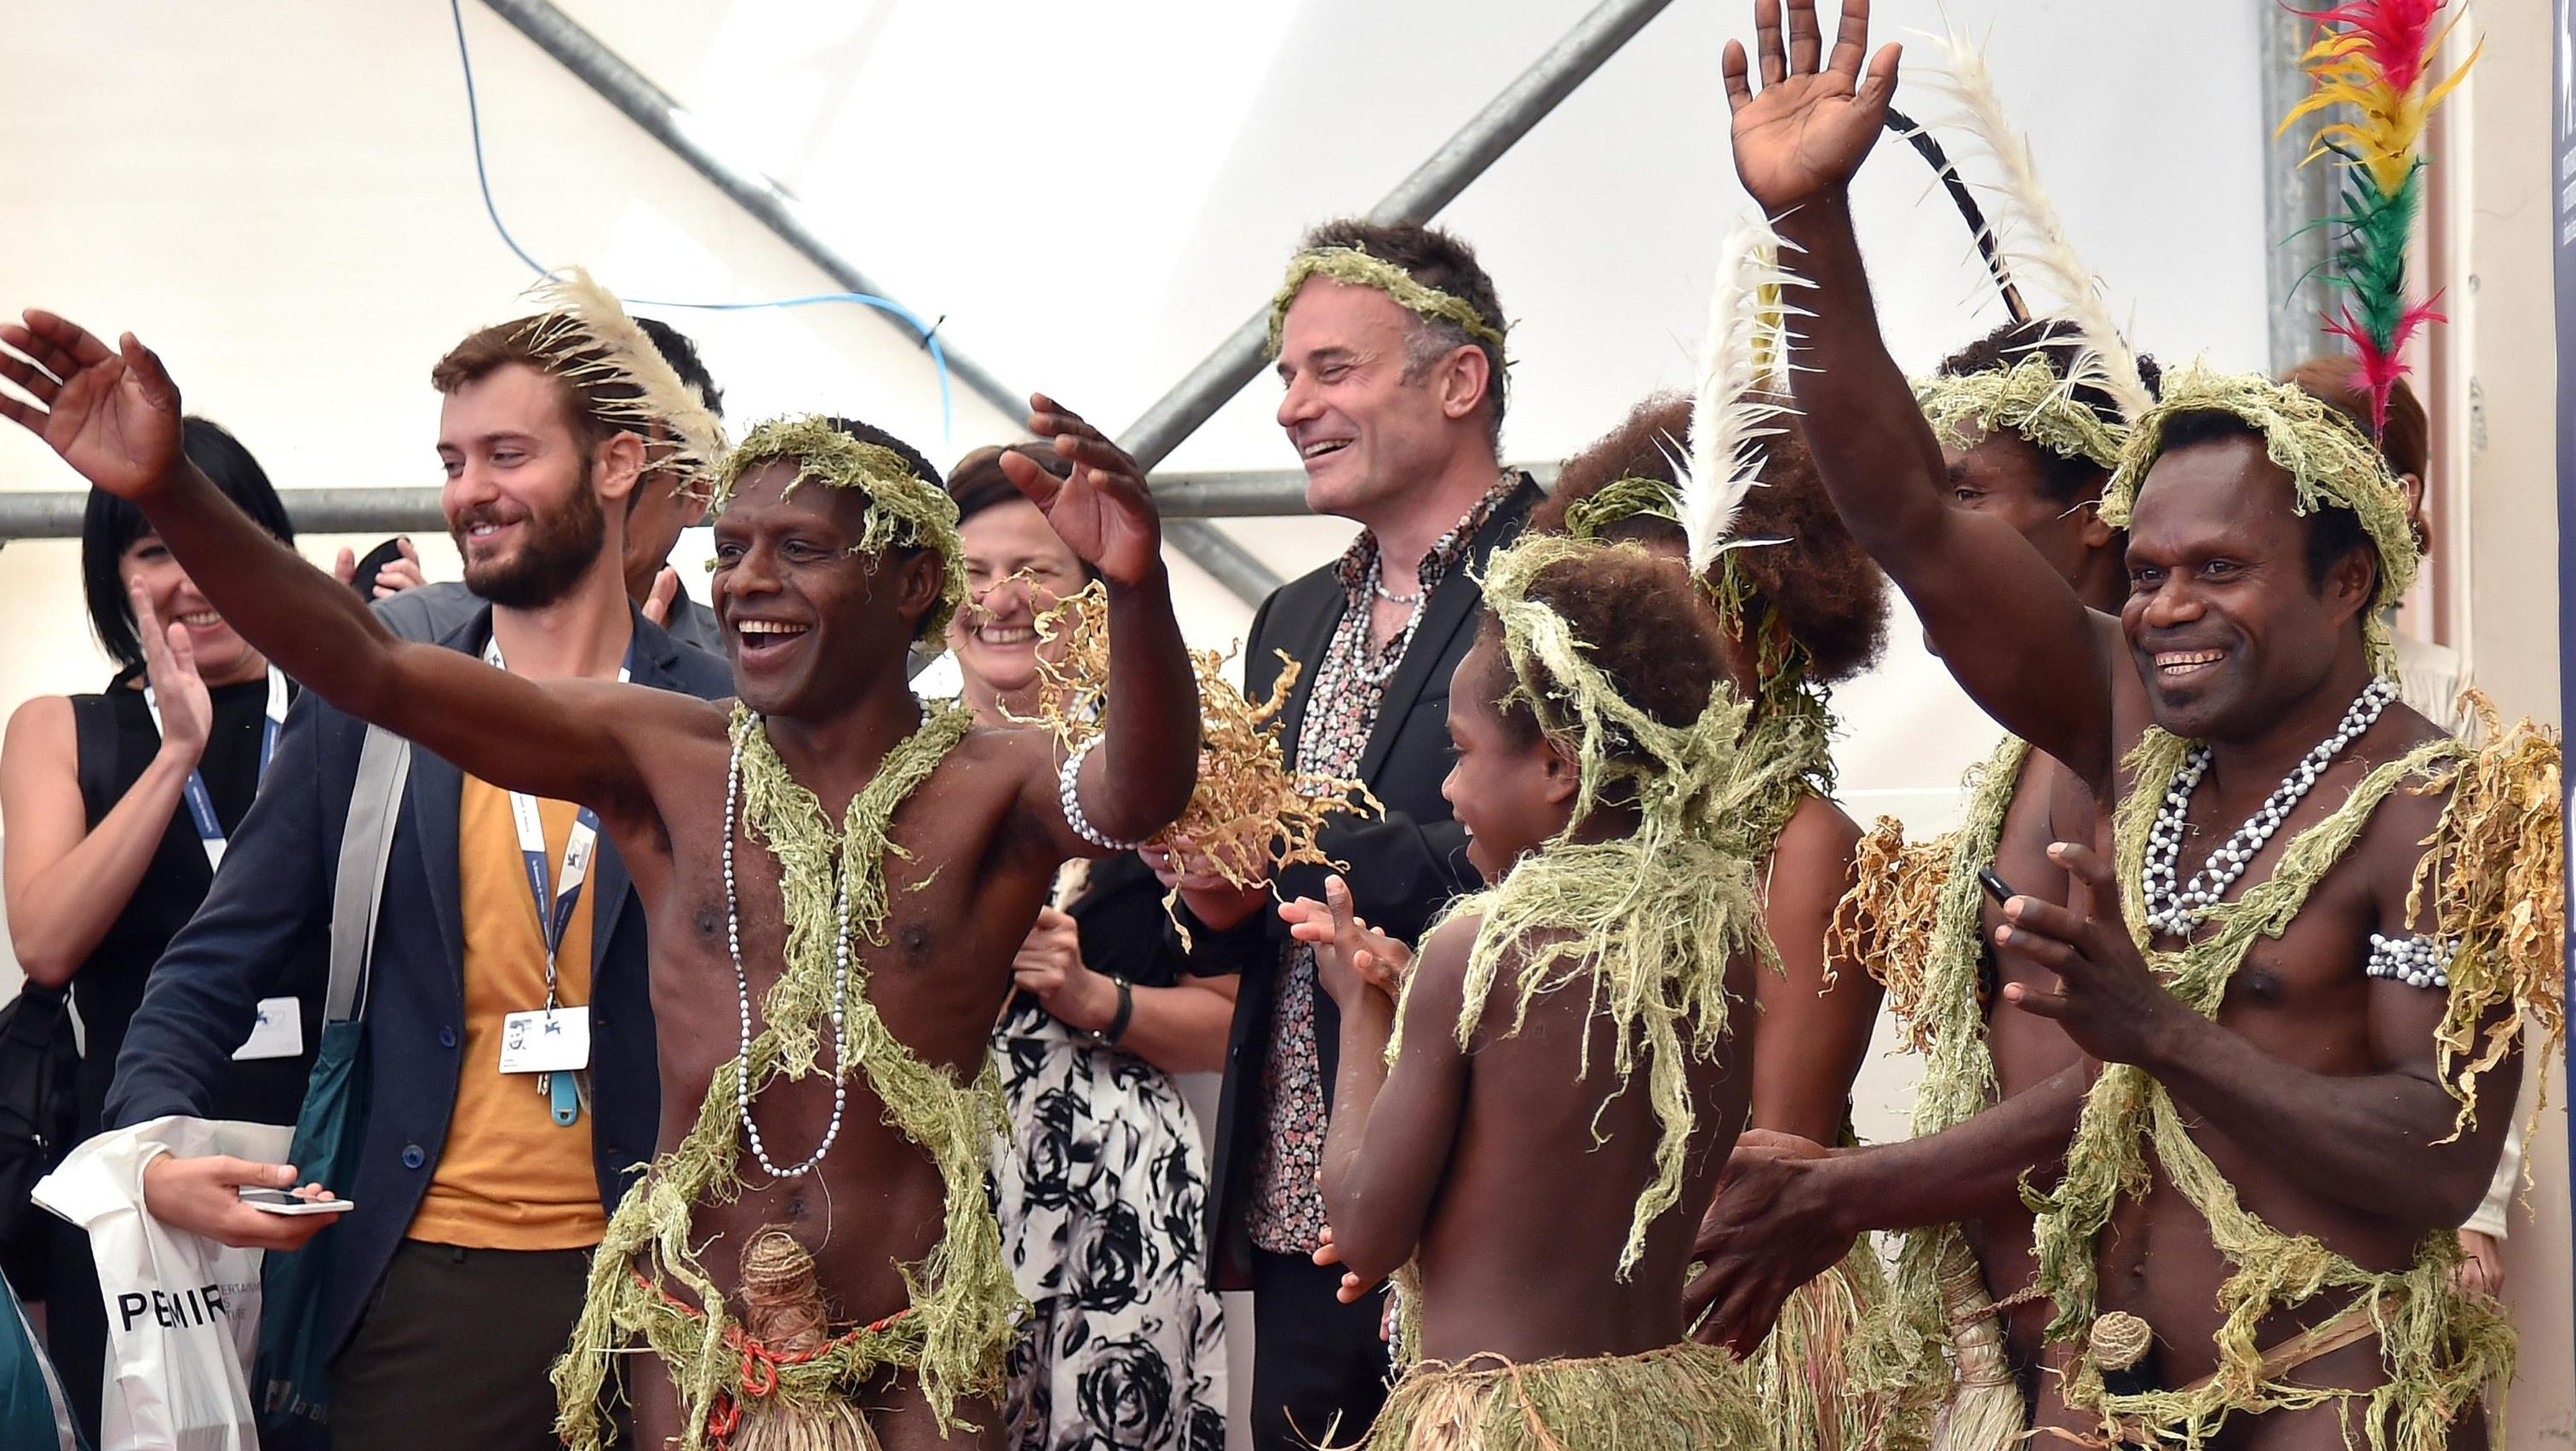 """Members of a tribe from Vanuatu island pose during the photocall of the movie """"Tanna"""" presented during the Film Critics Week at the 72nd annual Venice International Film Festival, in Venice, Italy, 08 September 2015. The festival which runs from o2 to 12 September.  EPA/ETTORE FERRARI"""